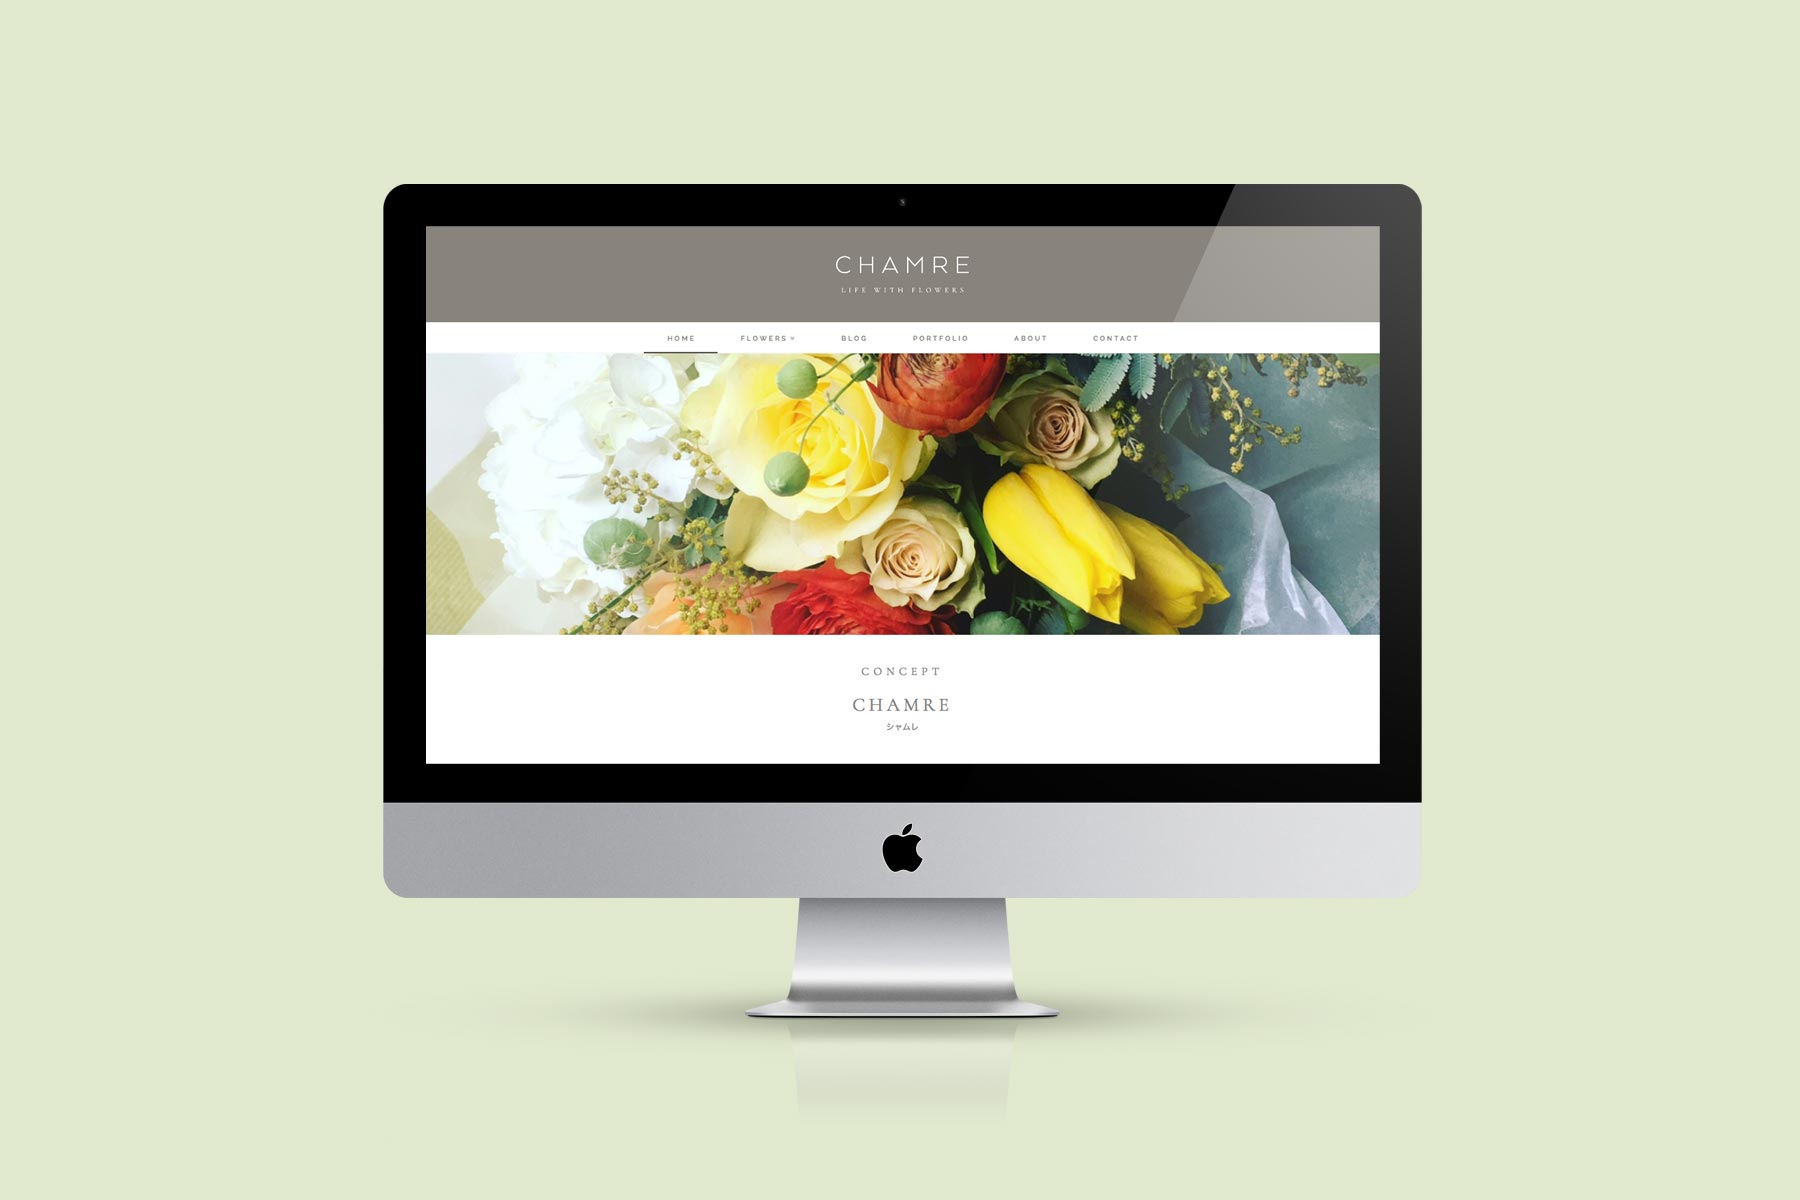 Chamre website home page, designed by Lisa Furze